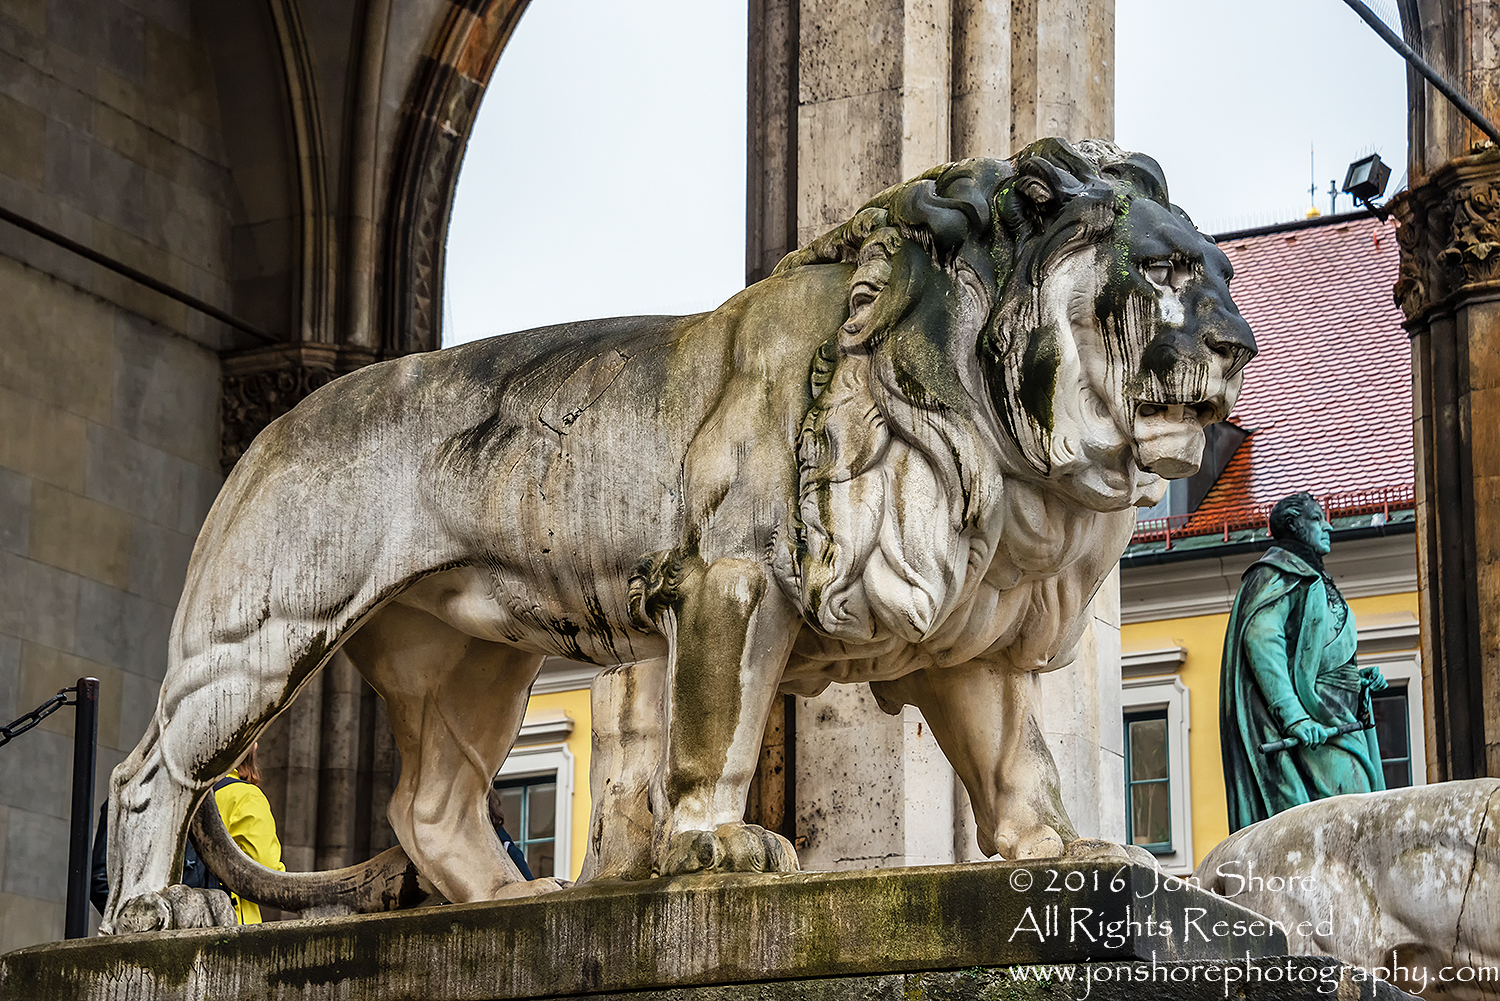 Crying Lion, Munich, Germany. Nikkor 200mm